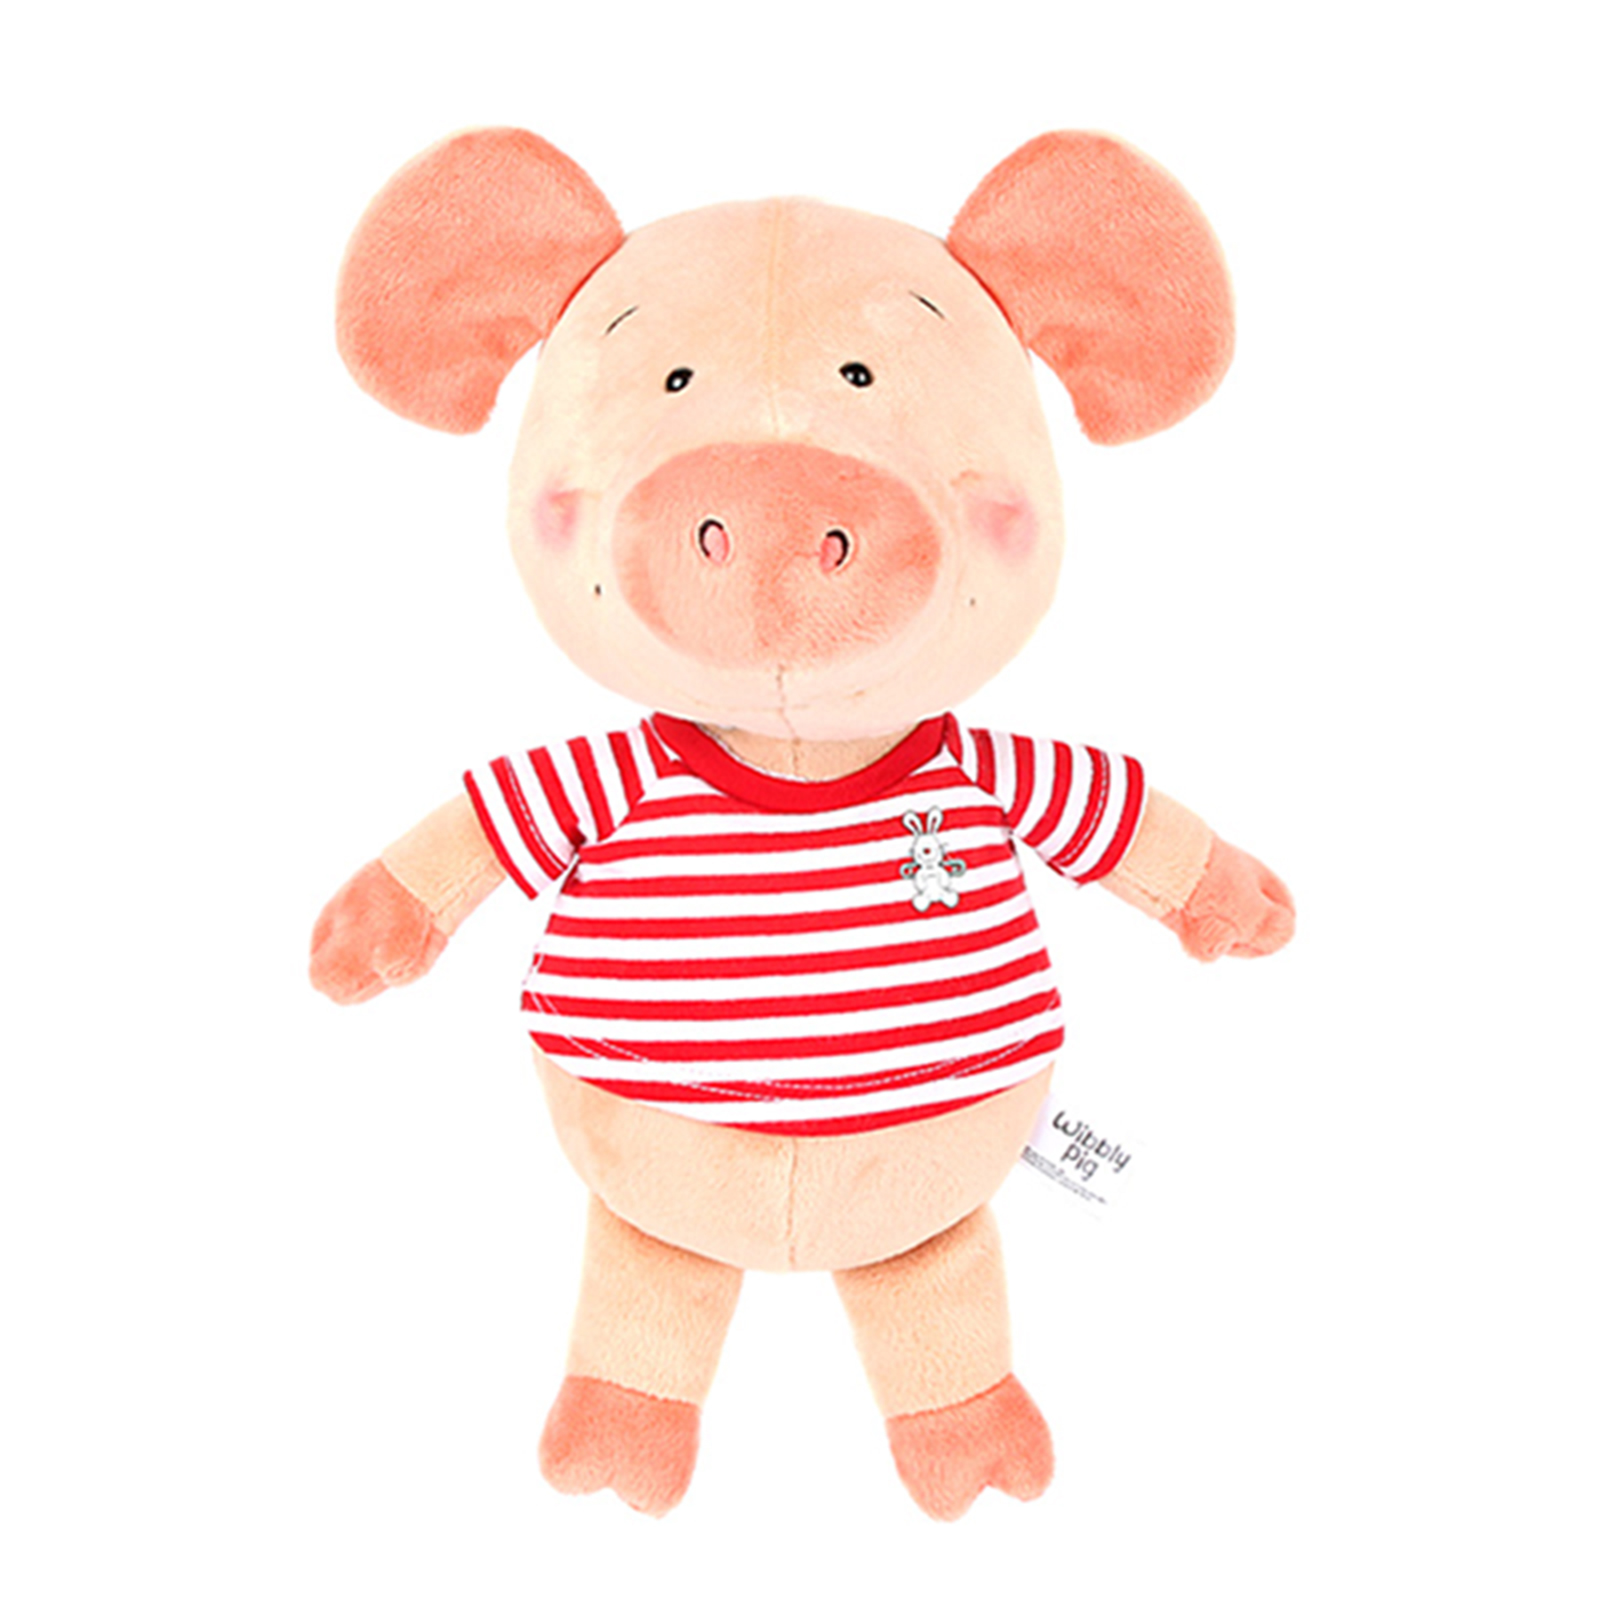 """Small Size WIBBLY PIG SOFT Animal Plush Toy Doll 12/""""High TWO Color Gift"""